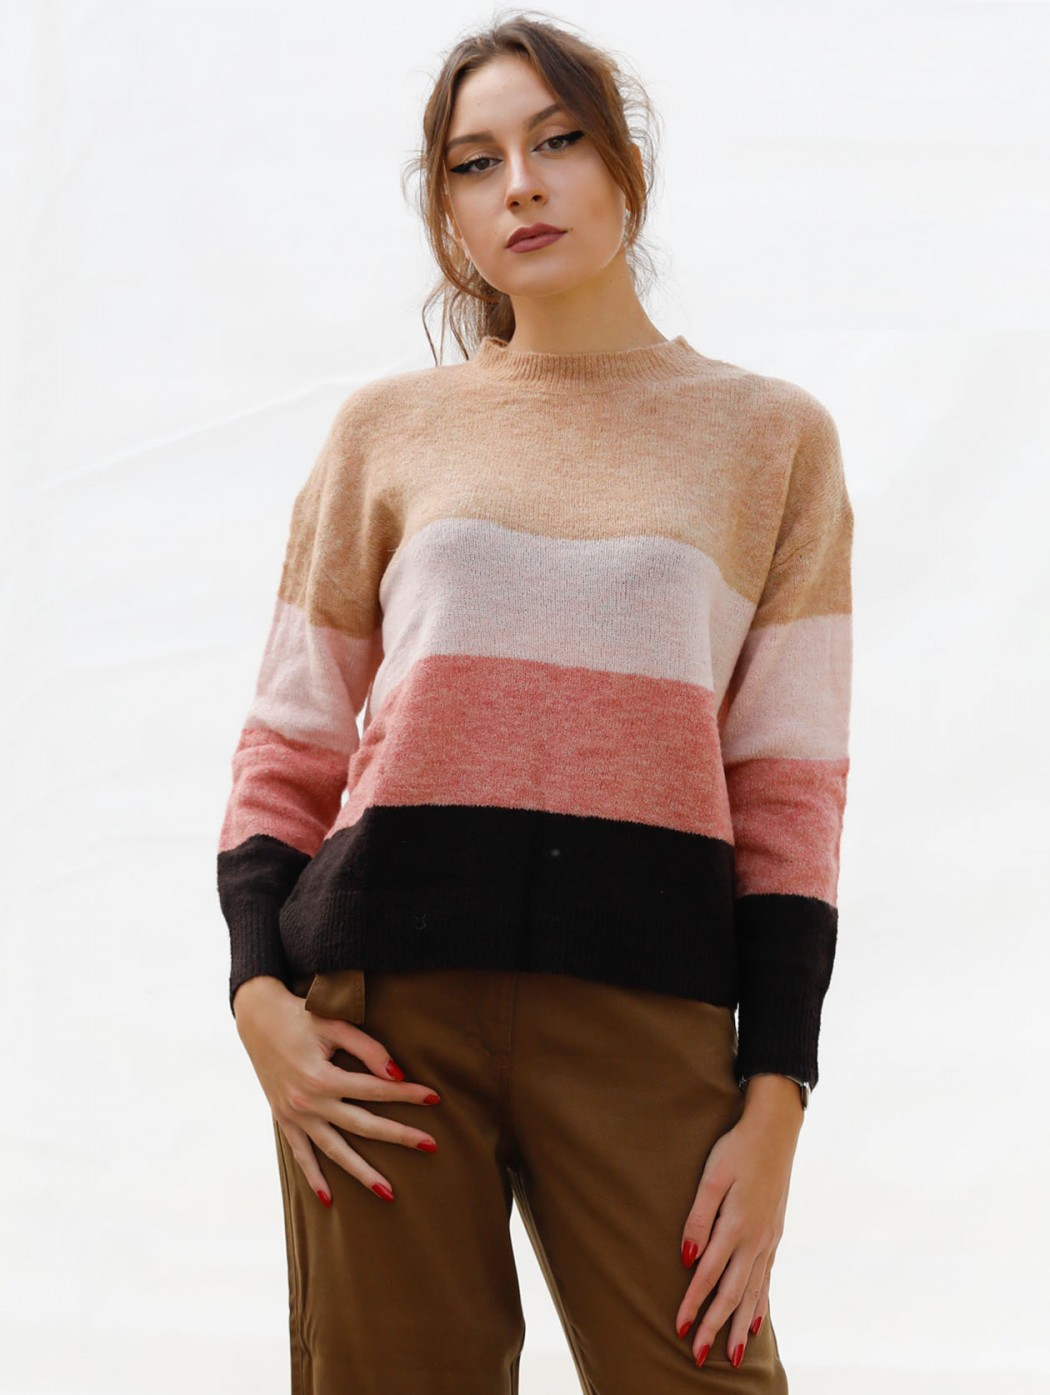 Paz Torras brown and pink...